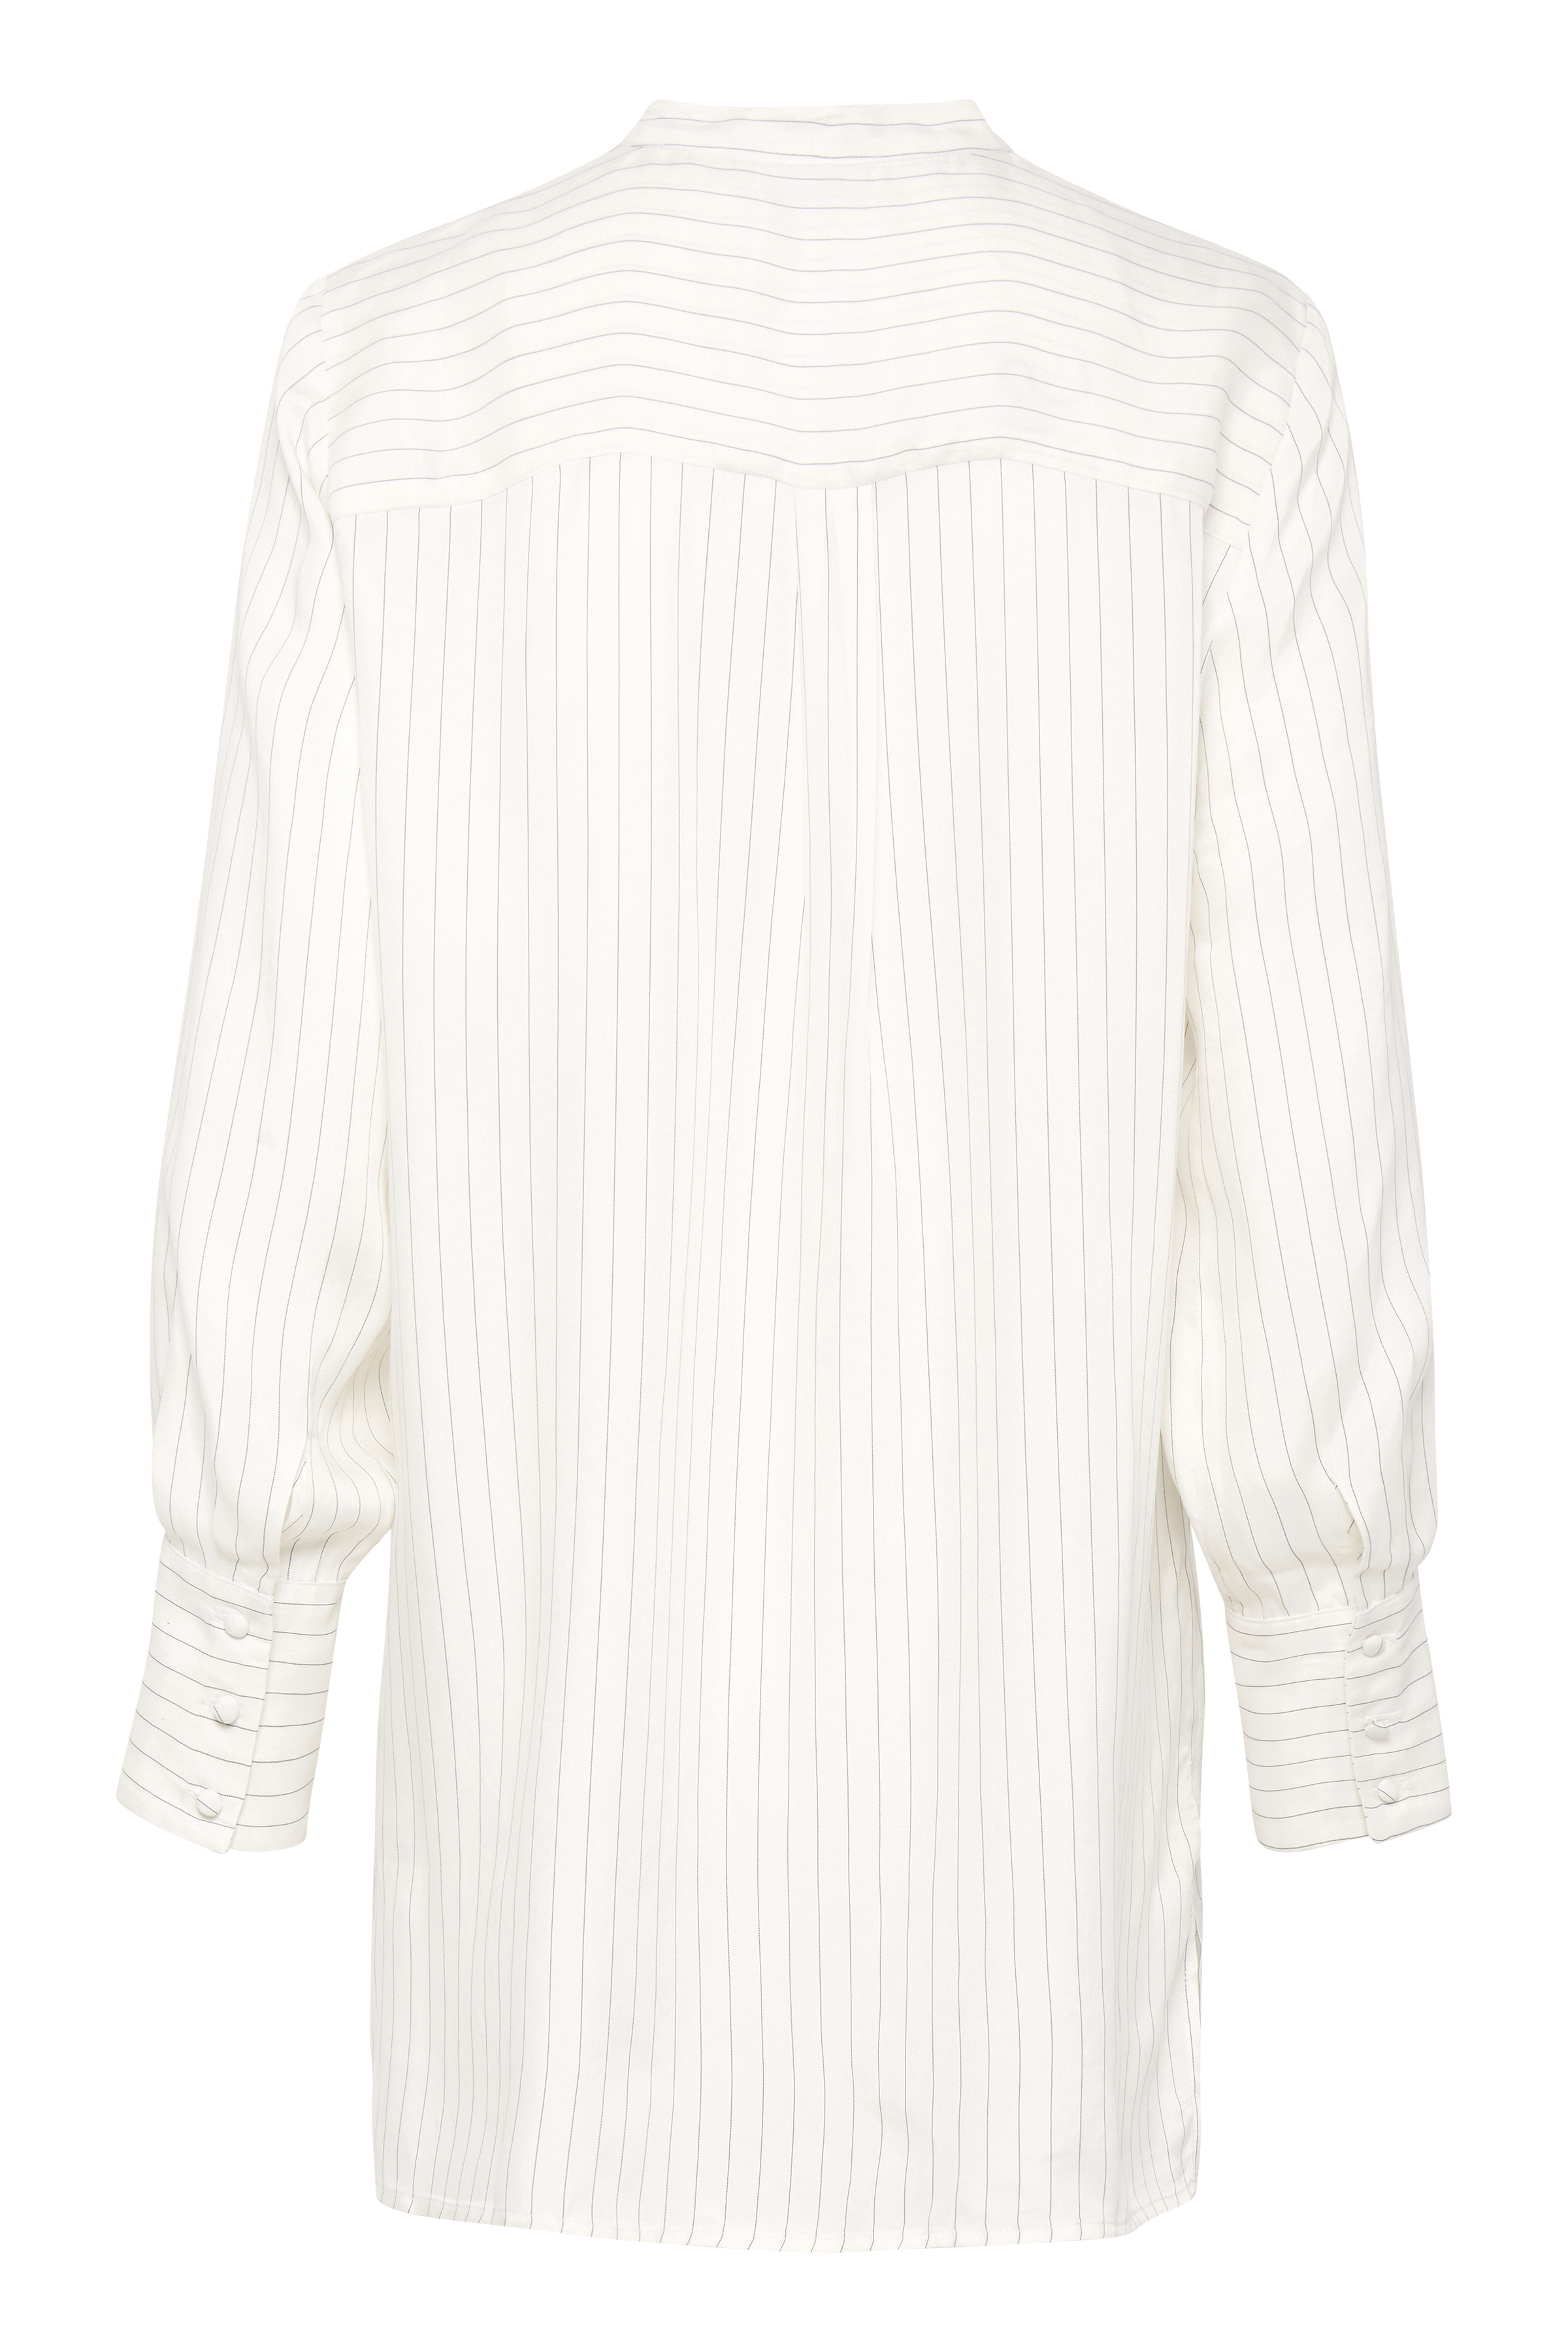 Off White Long sleeved shirt from b.young – Buy Off White Long sleeved shirt from size 36-46 here